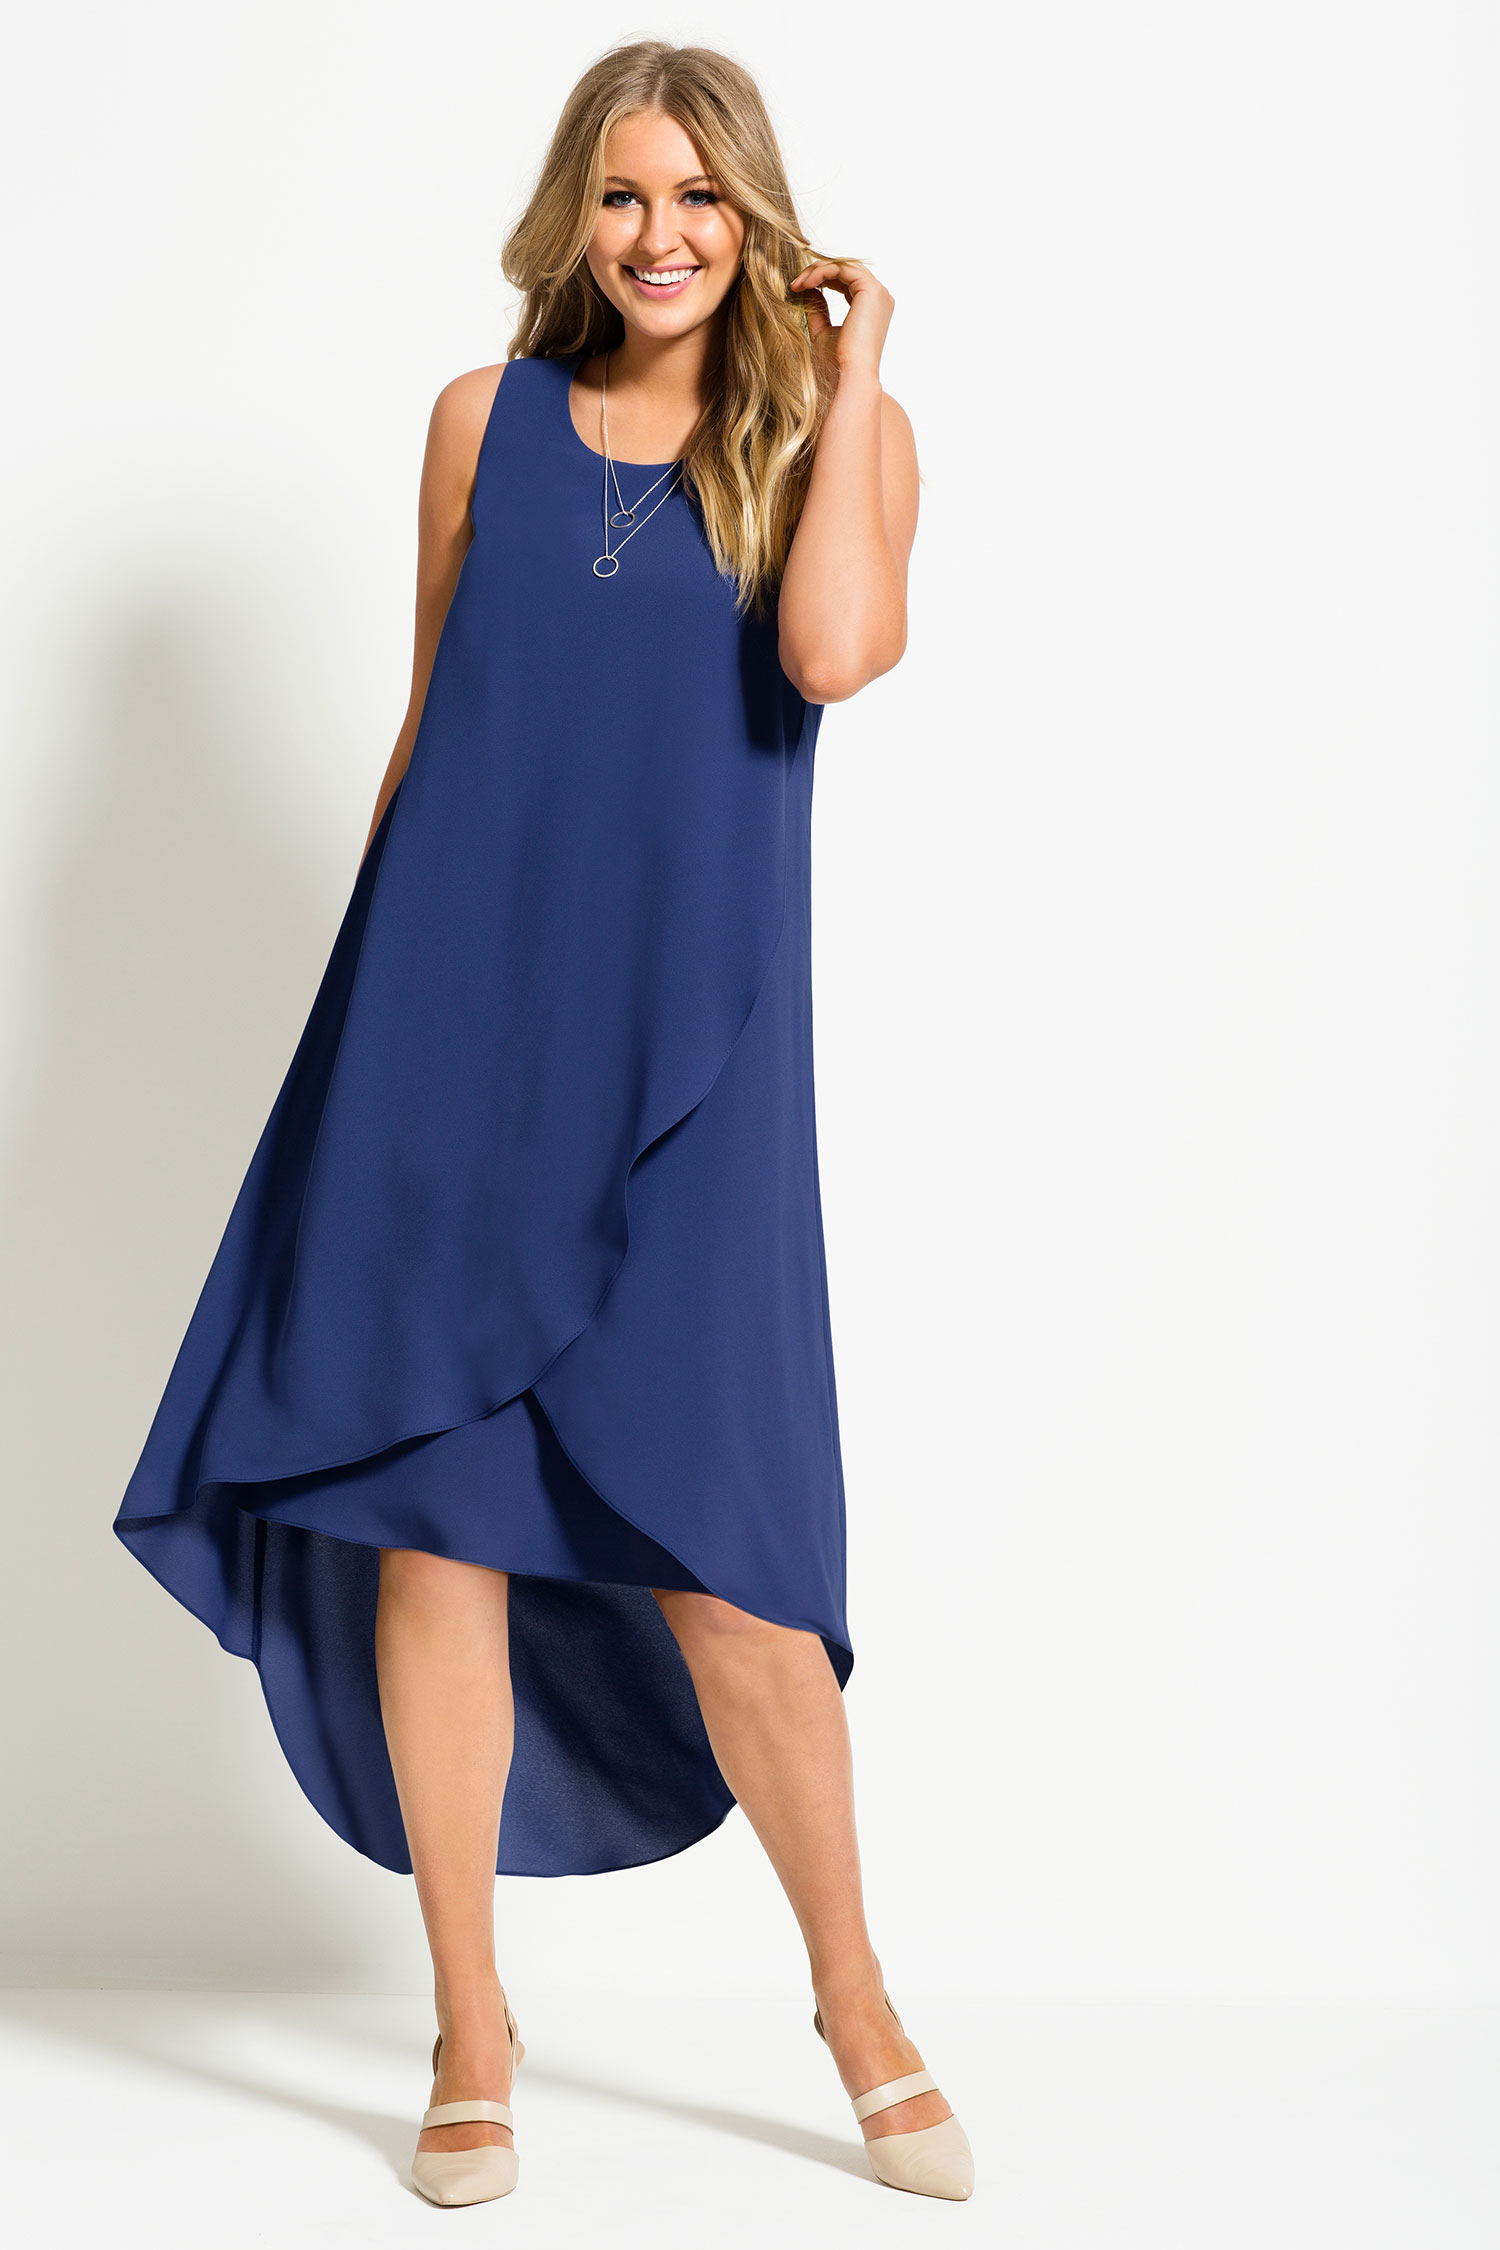 Grace Hill Woman Layered Dress